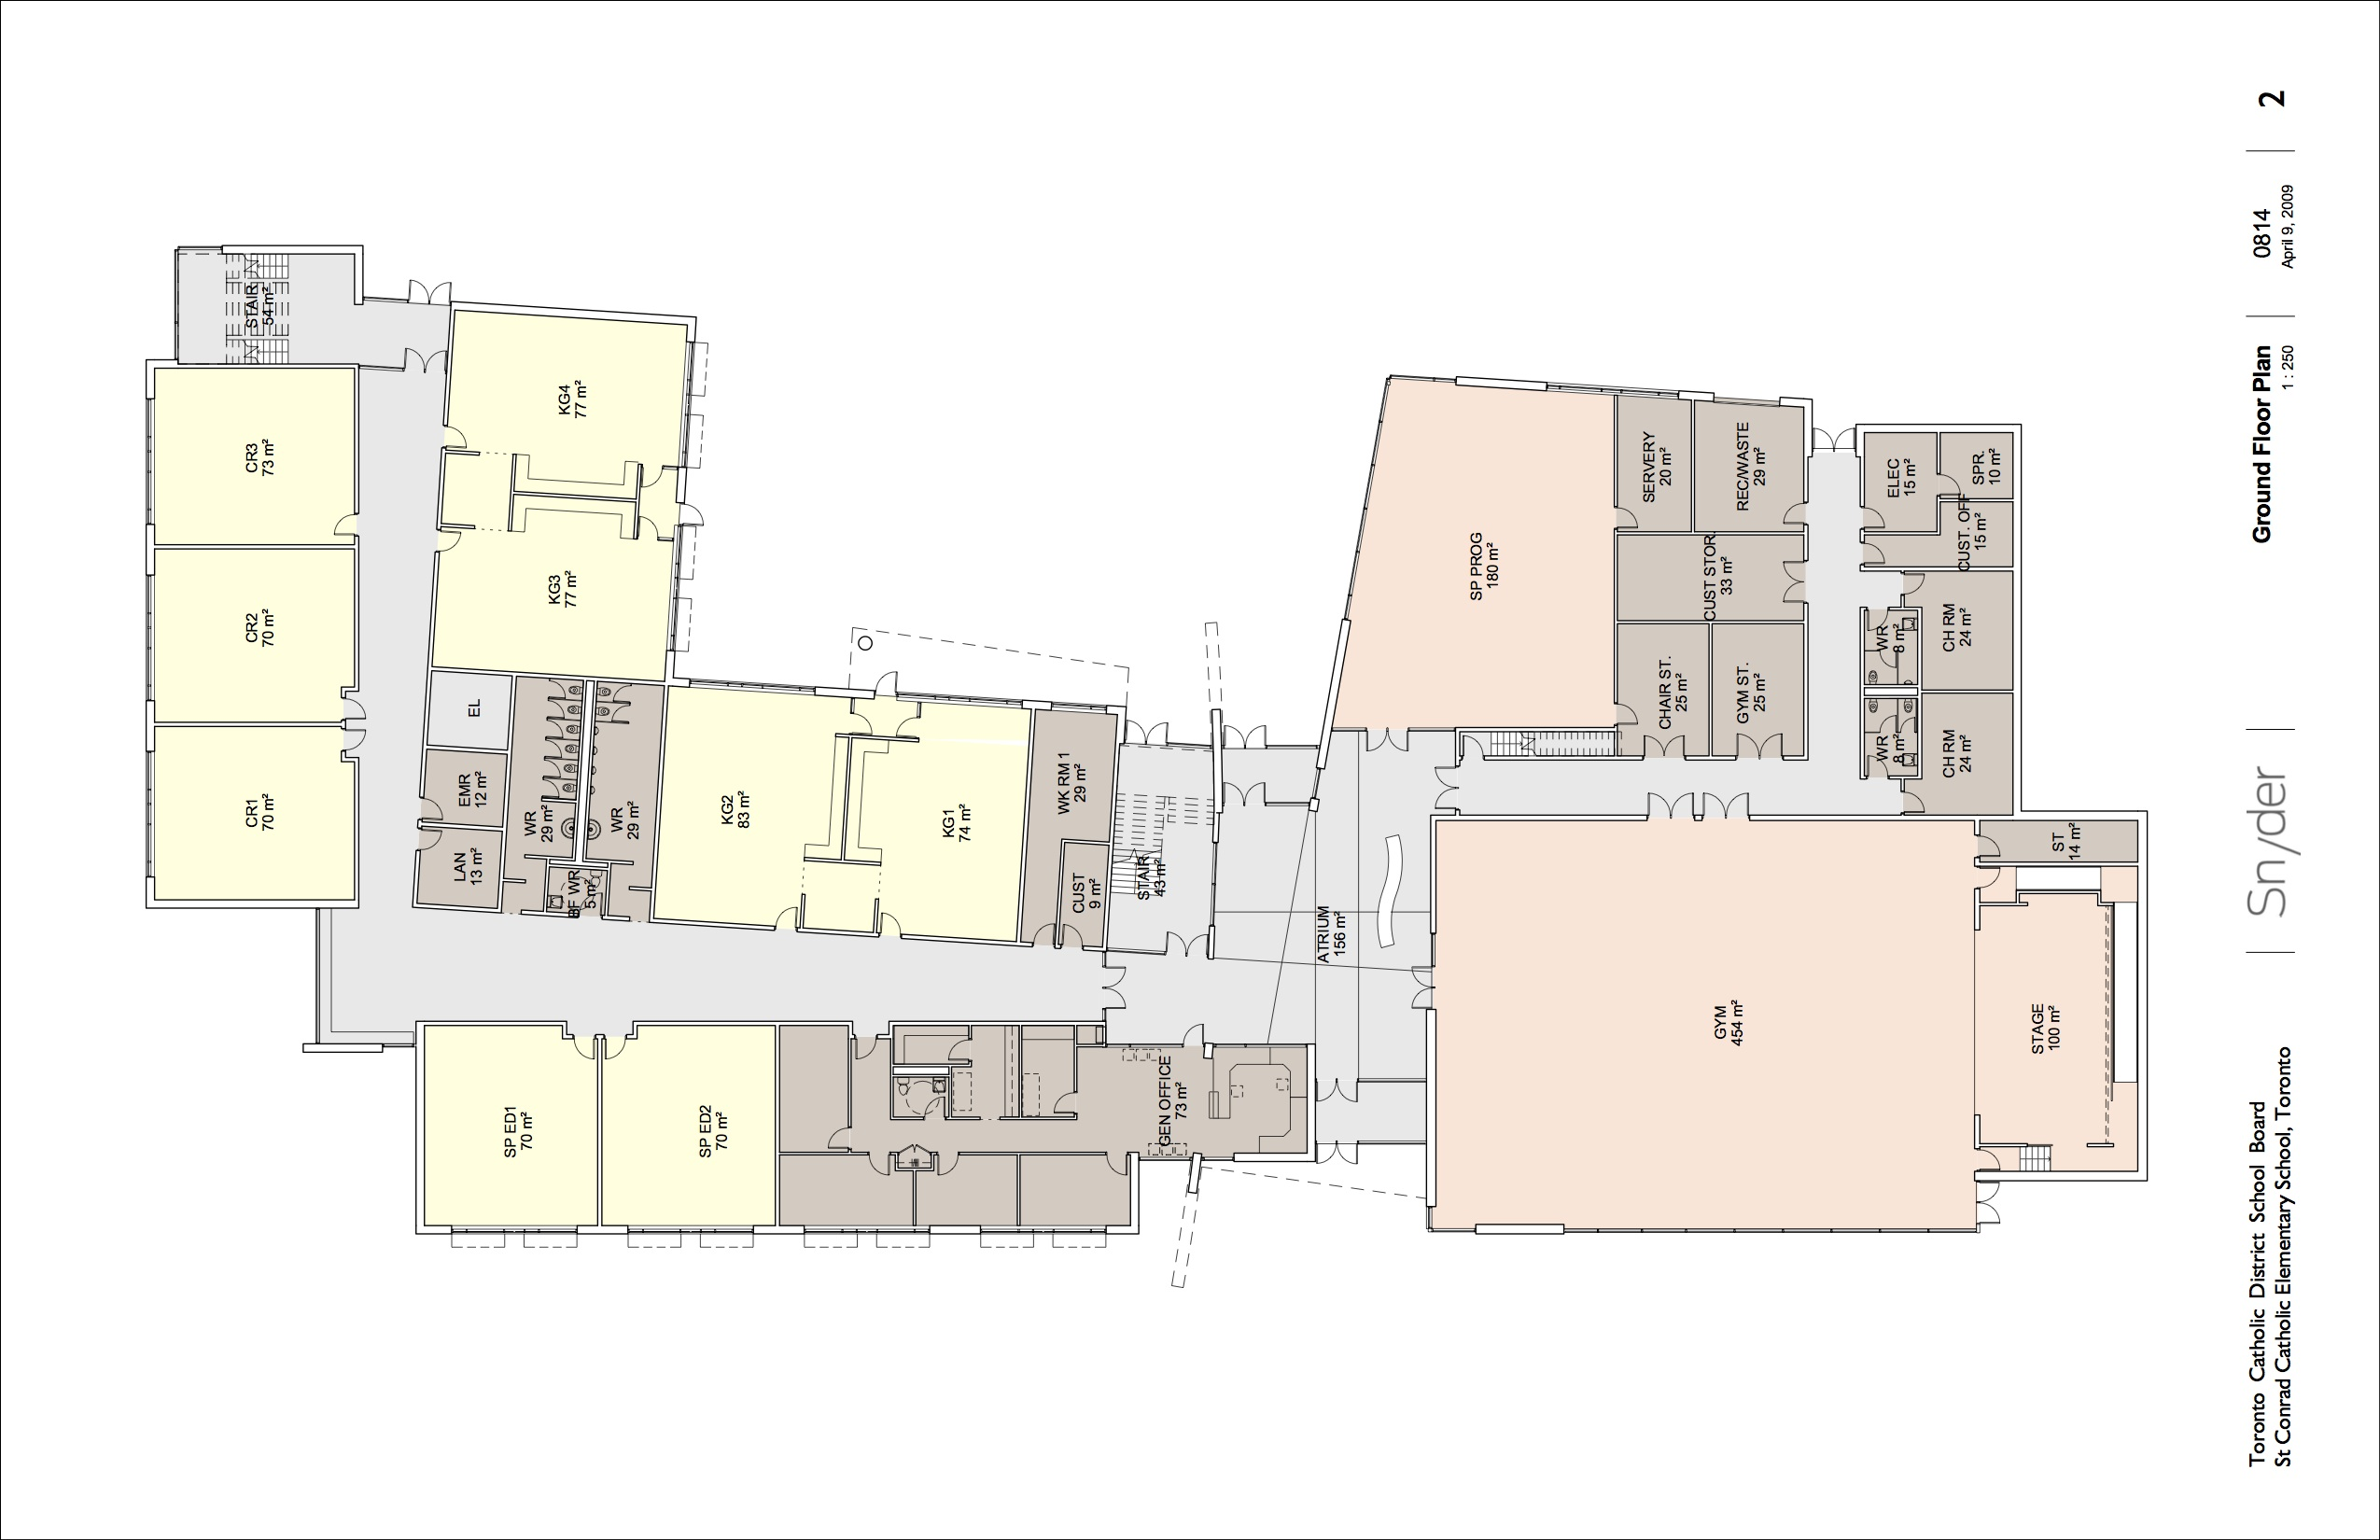 St conrad layout snyder for Floor map design